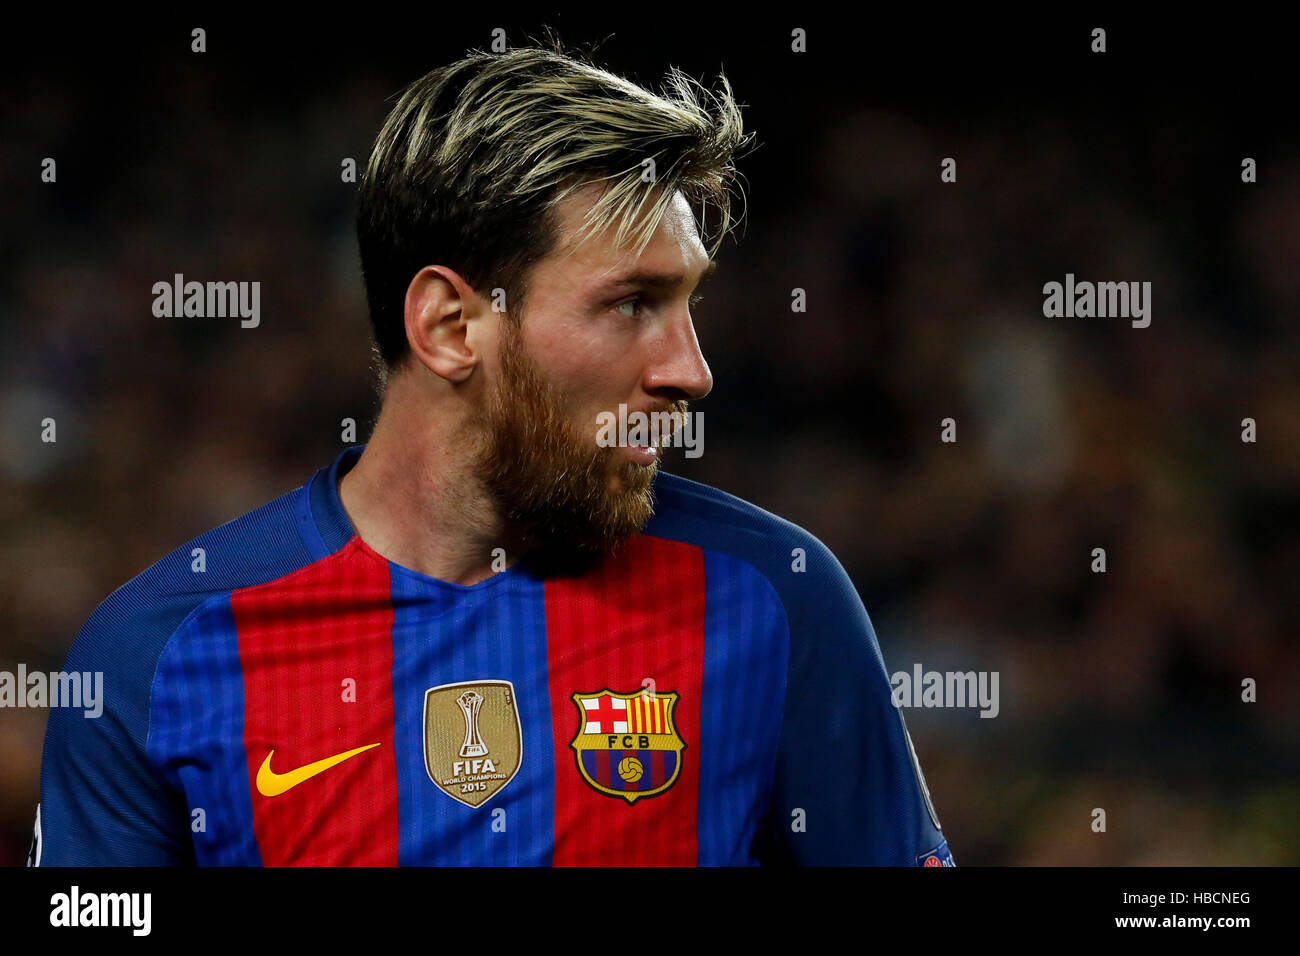 Barcelona, Spain. 6th Dec, 2016. Barcelona's Lionel Messi reacts during the UEFA Champions League match against - Stock Image